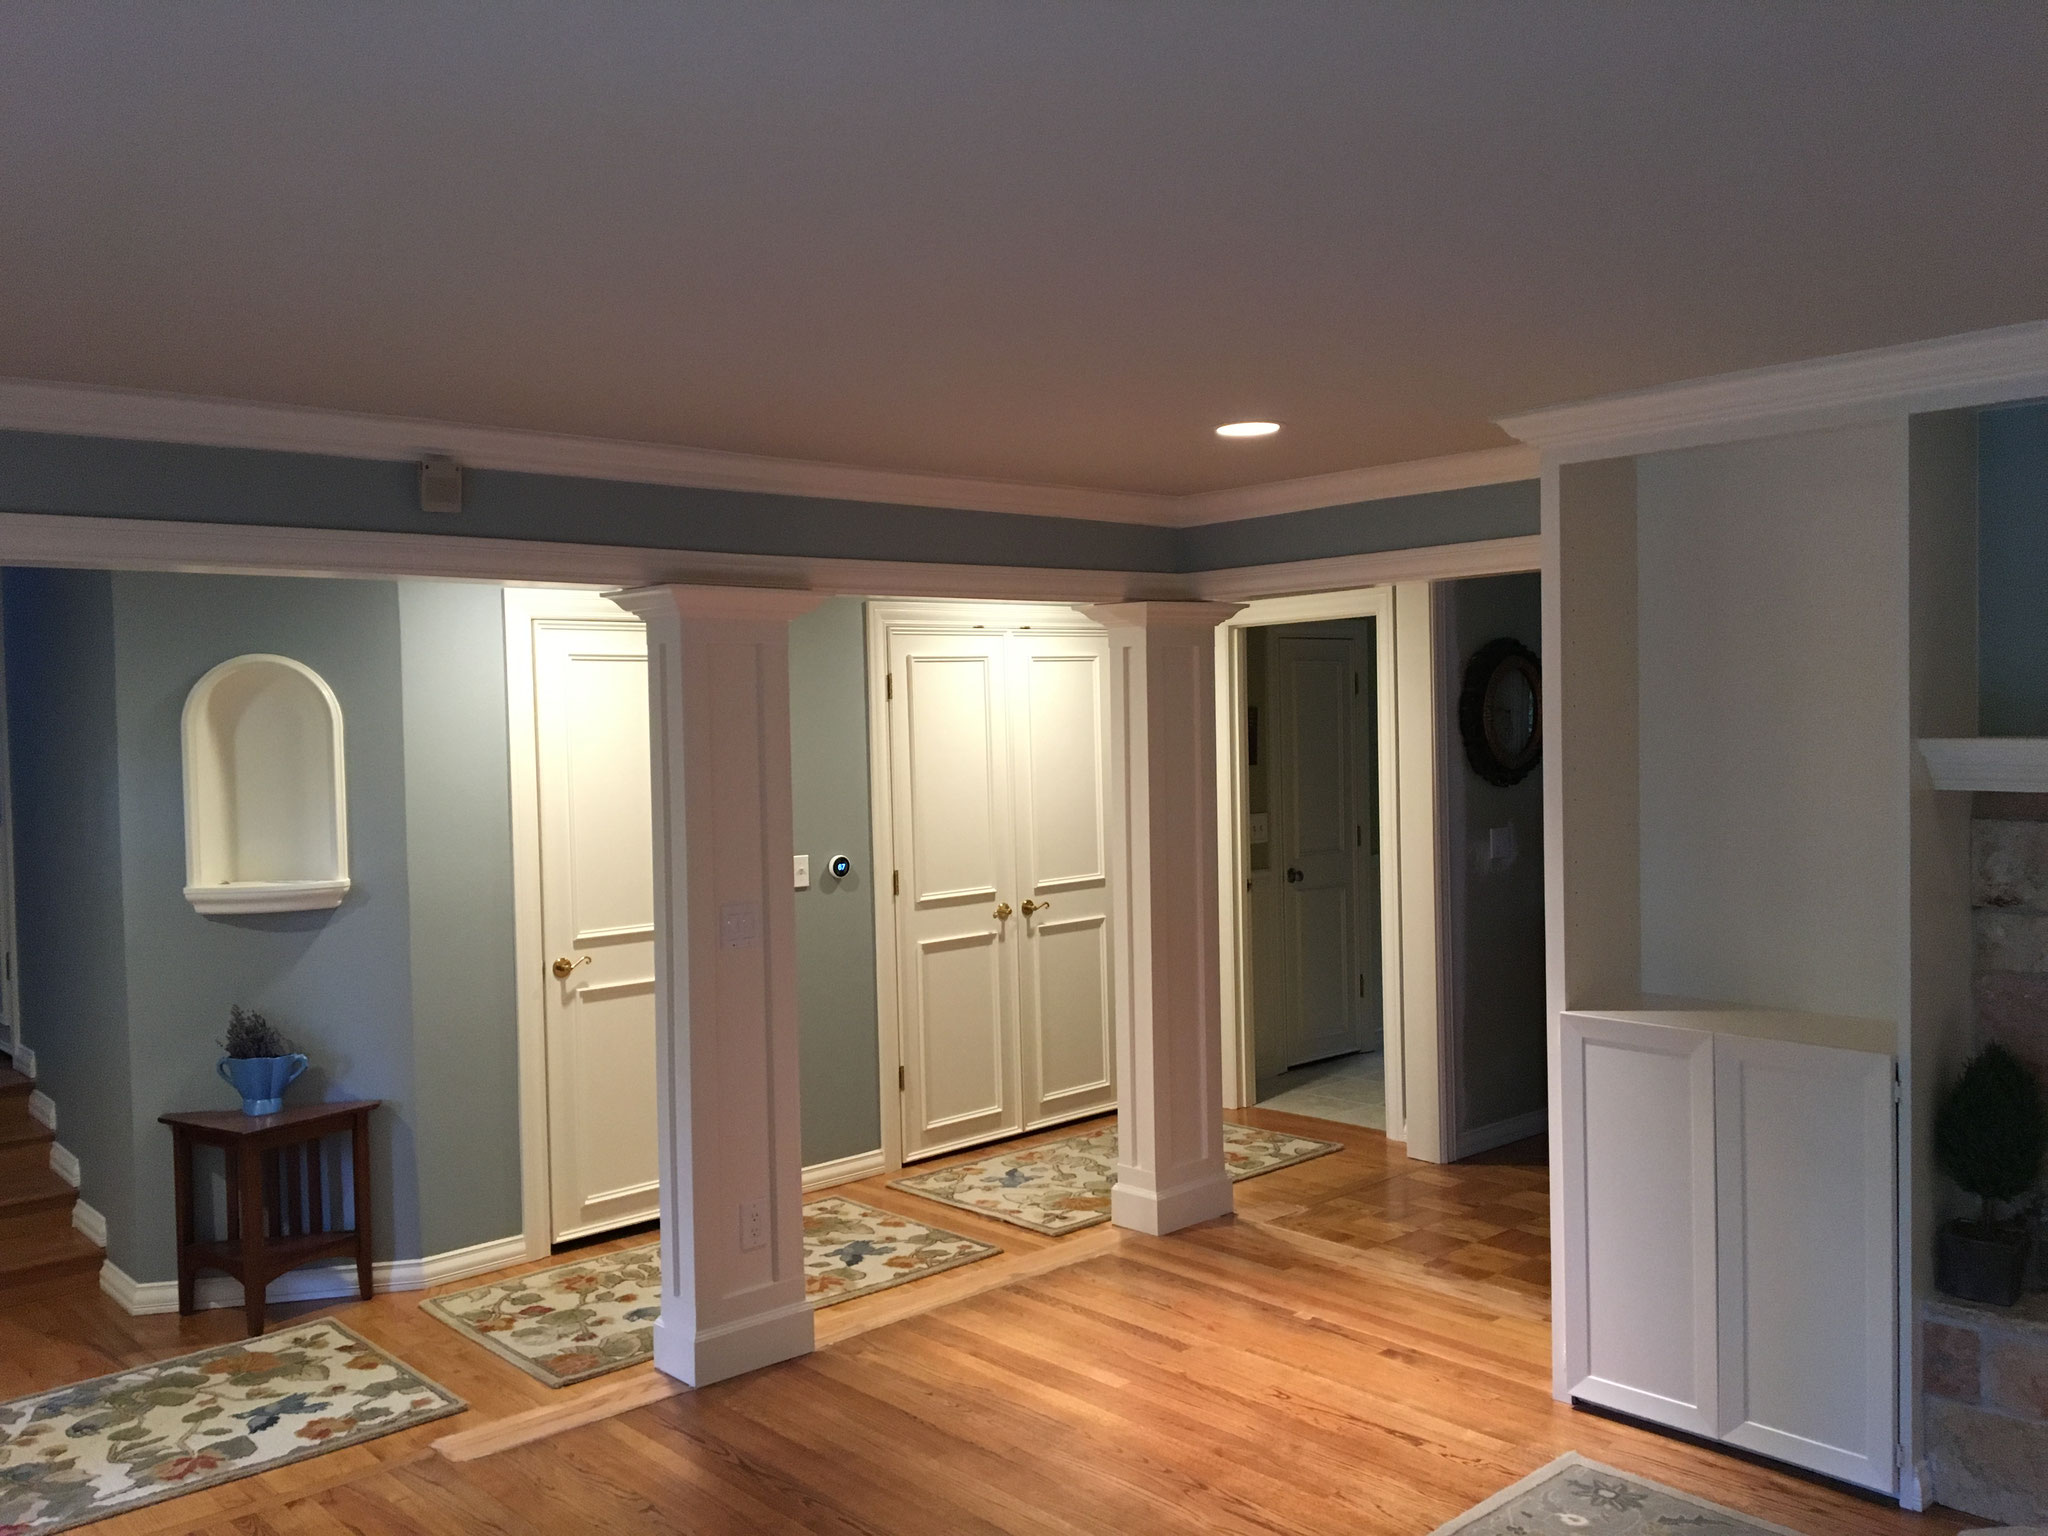 Woodwork was repainted like new ....walls too